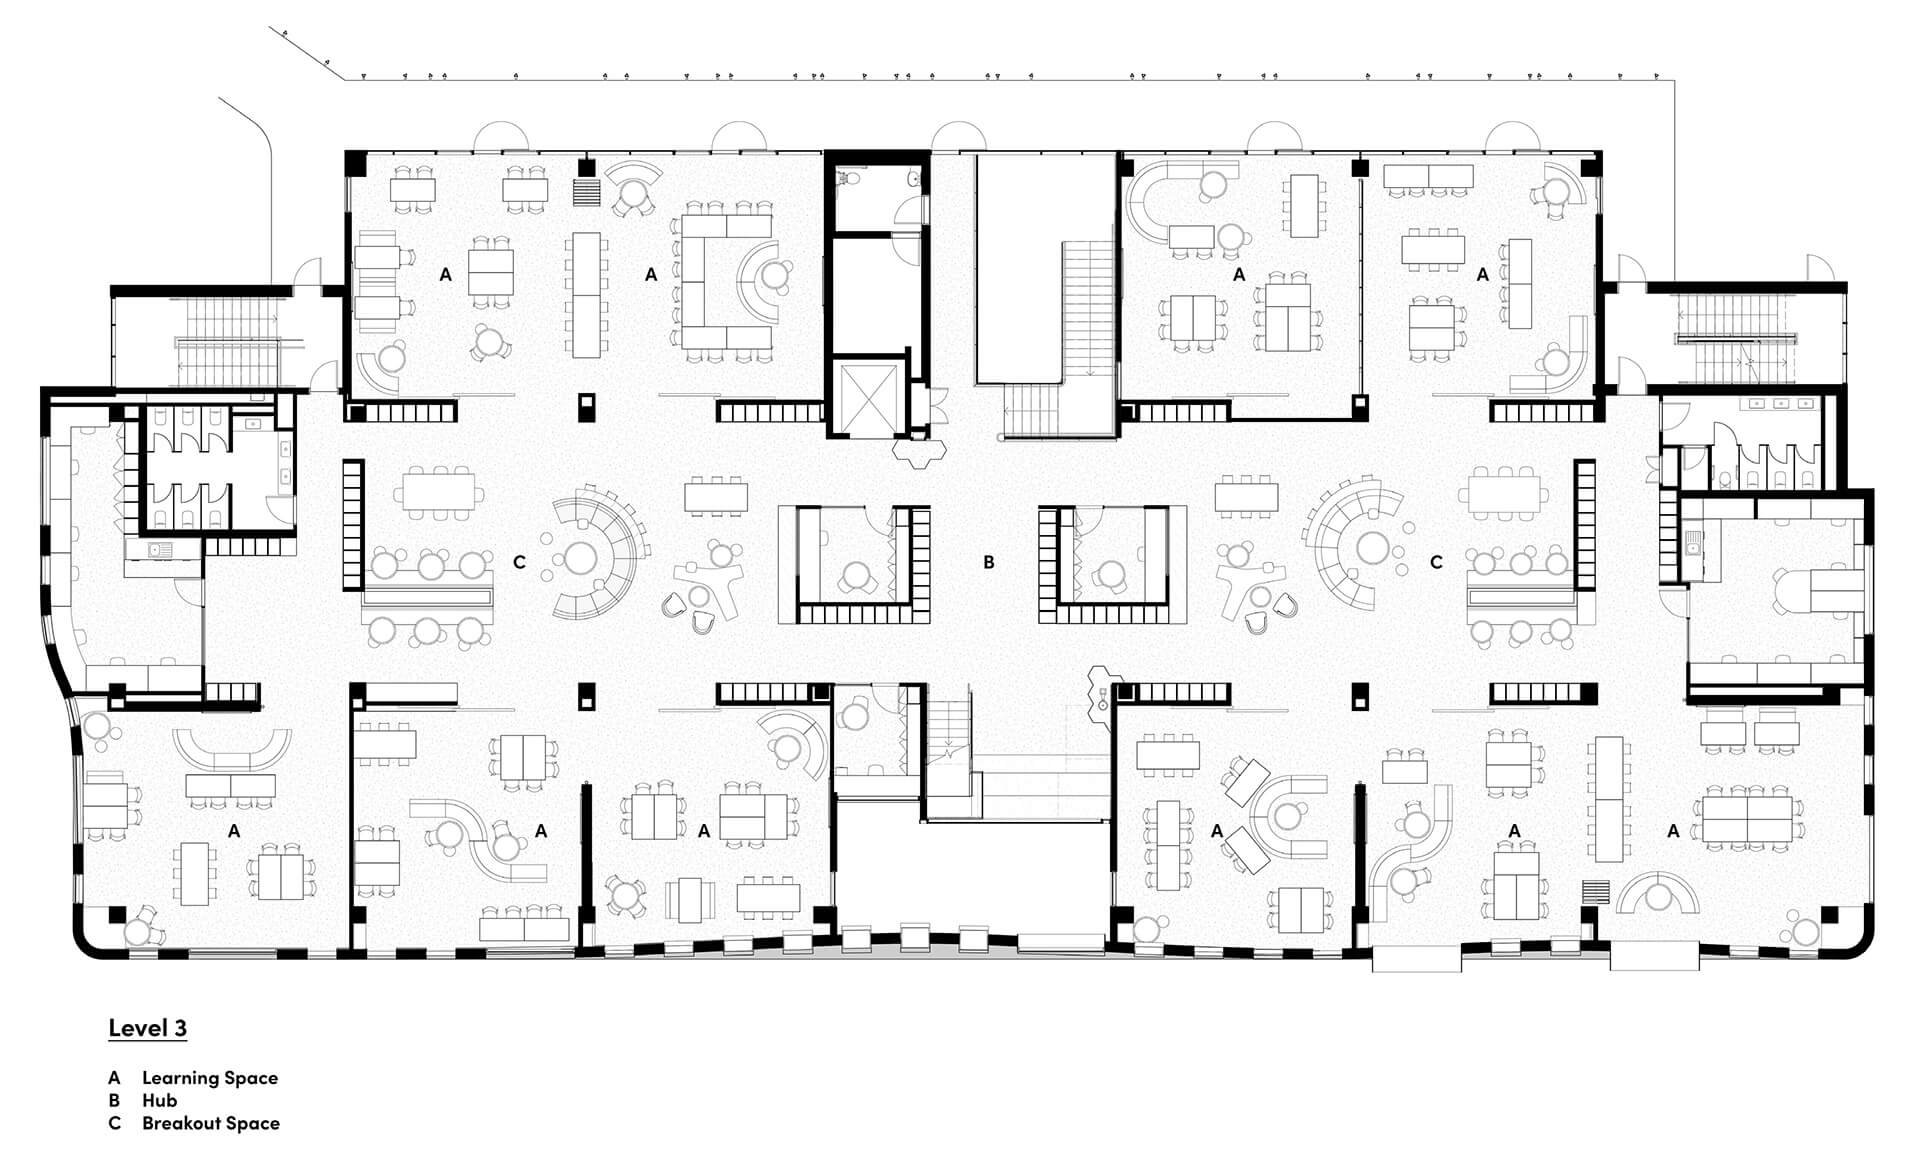 Plan – Level 3 | MLC Nicholas Learning Centre by Mcildowie Partners| STIRworld